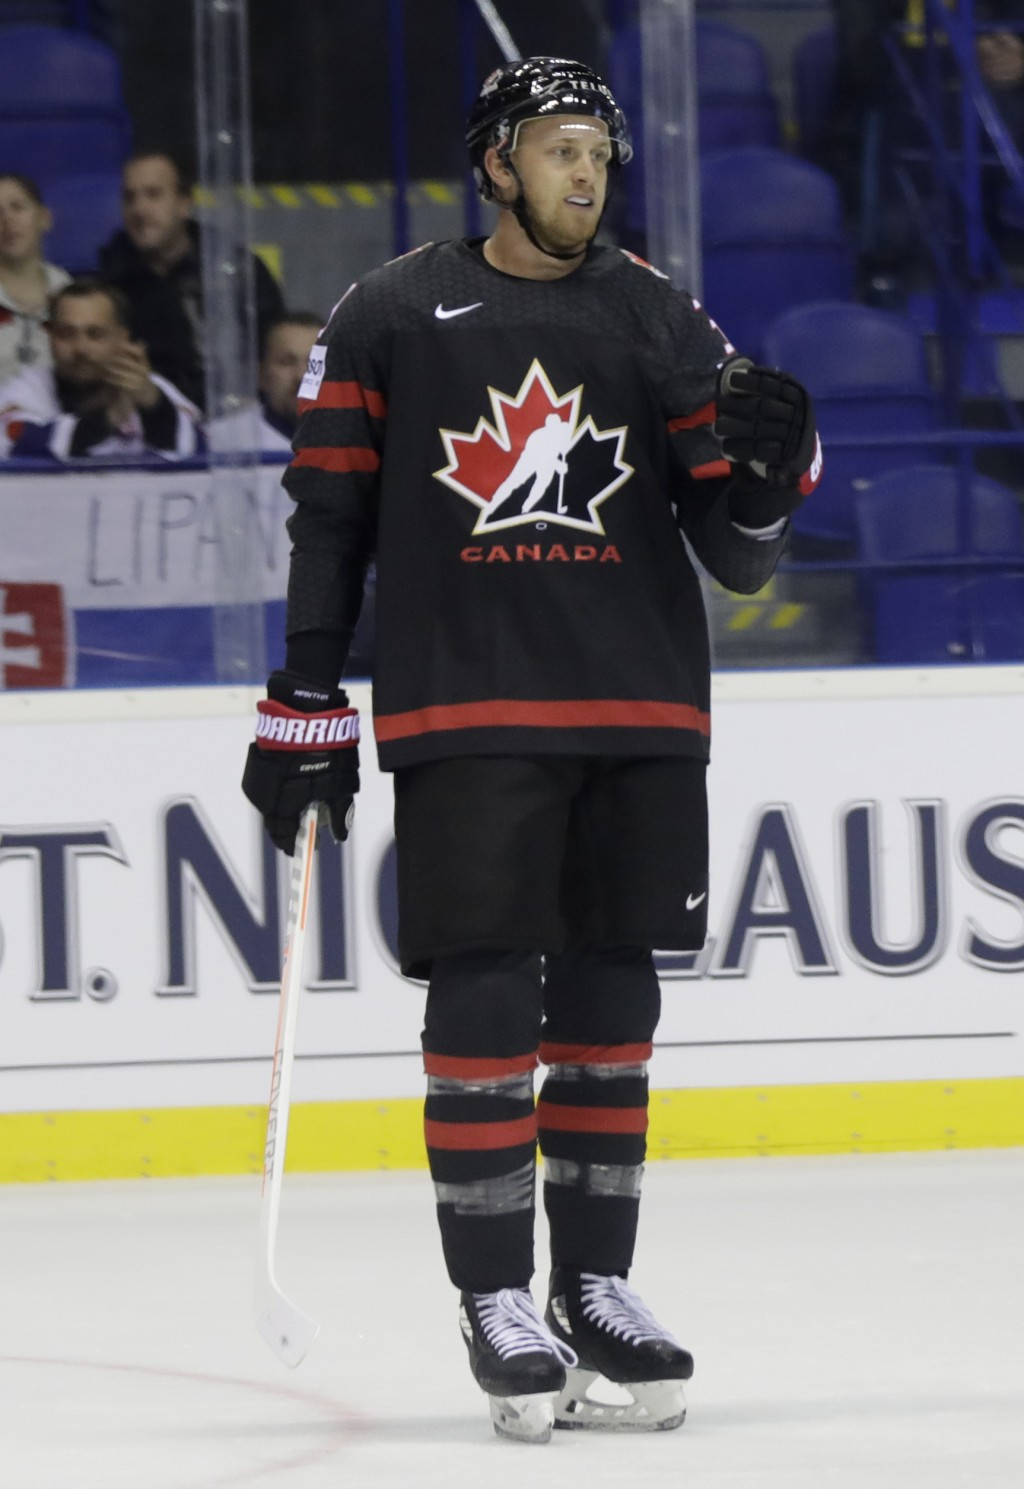 Canada's Anthony Mantha celebrates after scoring his sides first goal during the Ice Hockey World Championships group A match between Canada and Franc